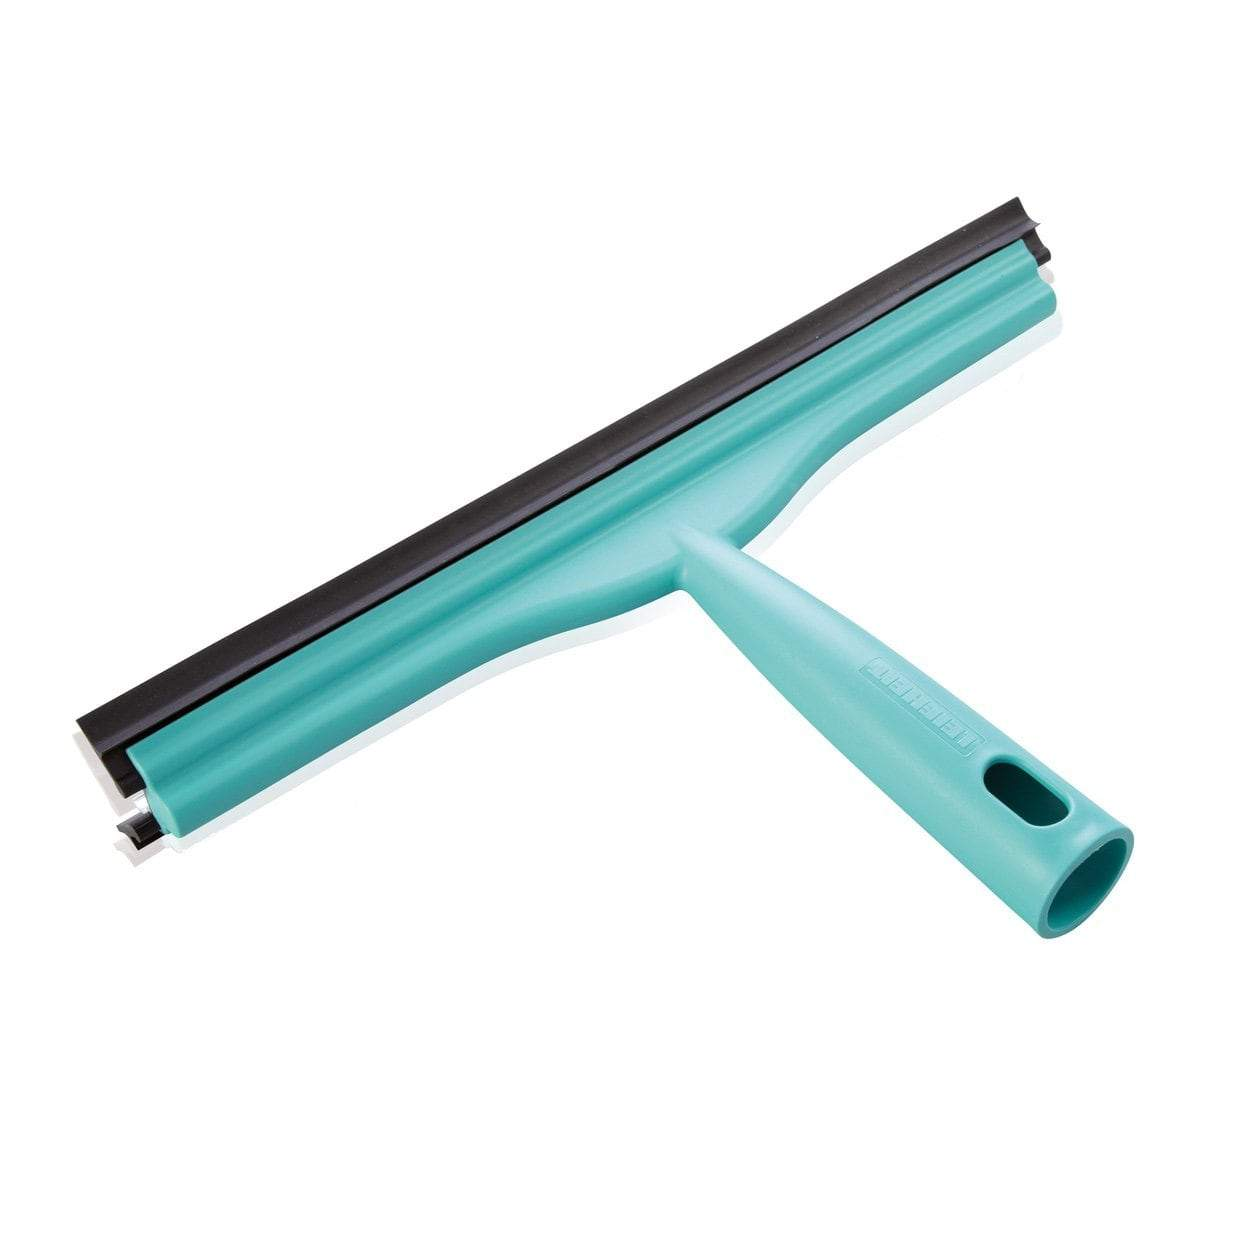 Photo of Leifheit Hand Window Cleaner 30cm